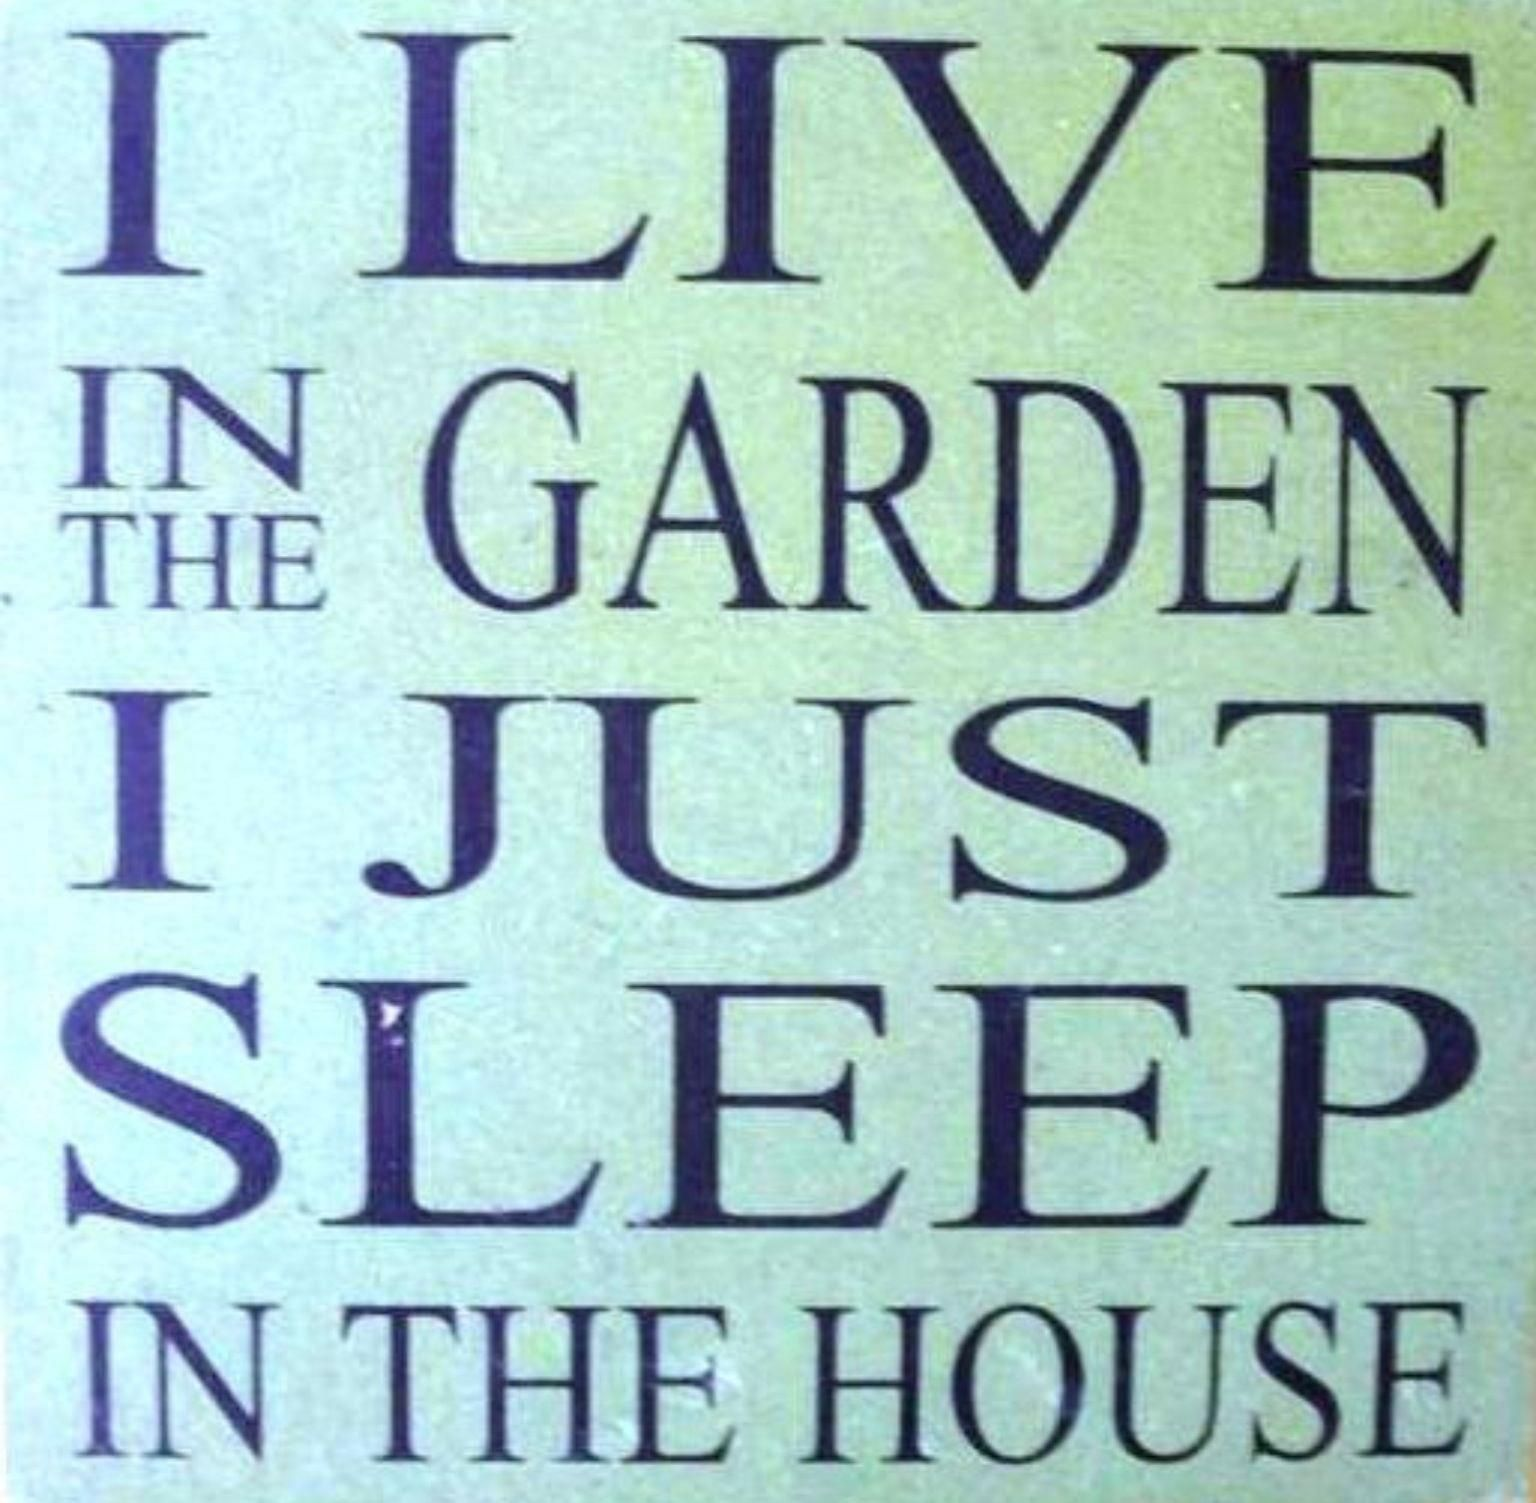 I Just Love This House: I Live In The Garden. I Just Sleep In The House. @Jean